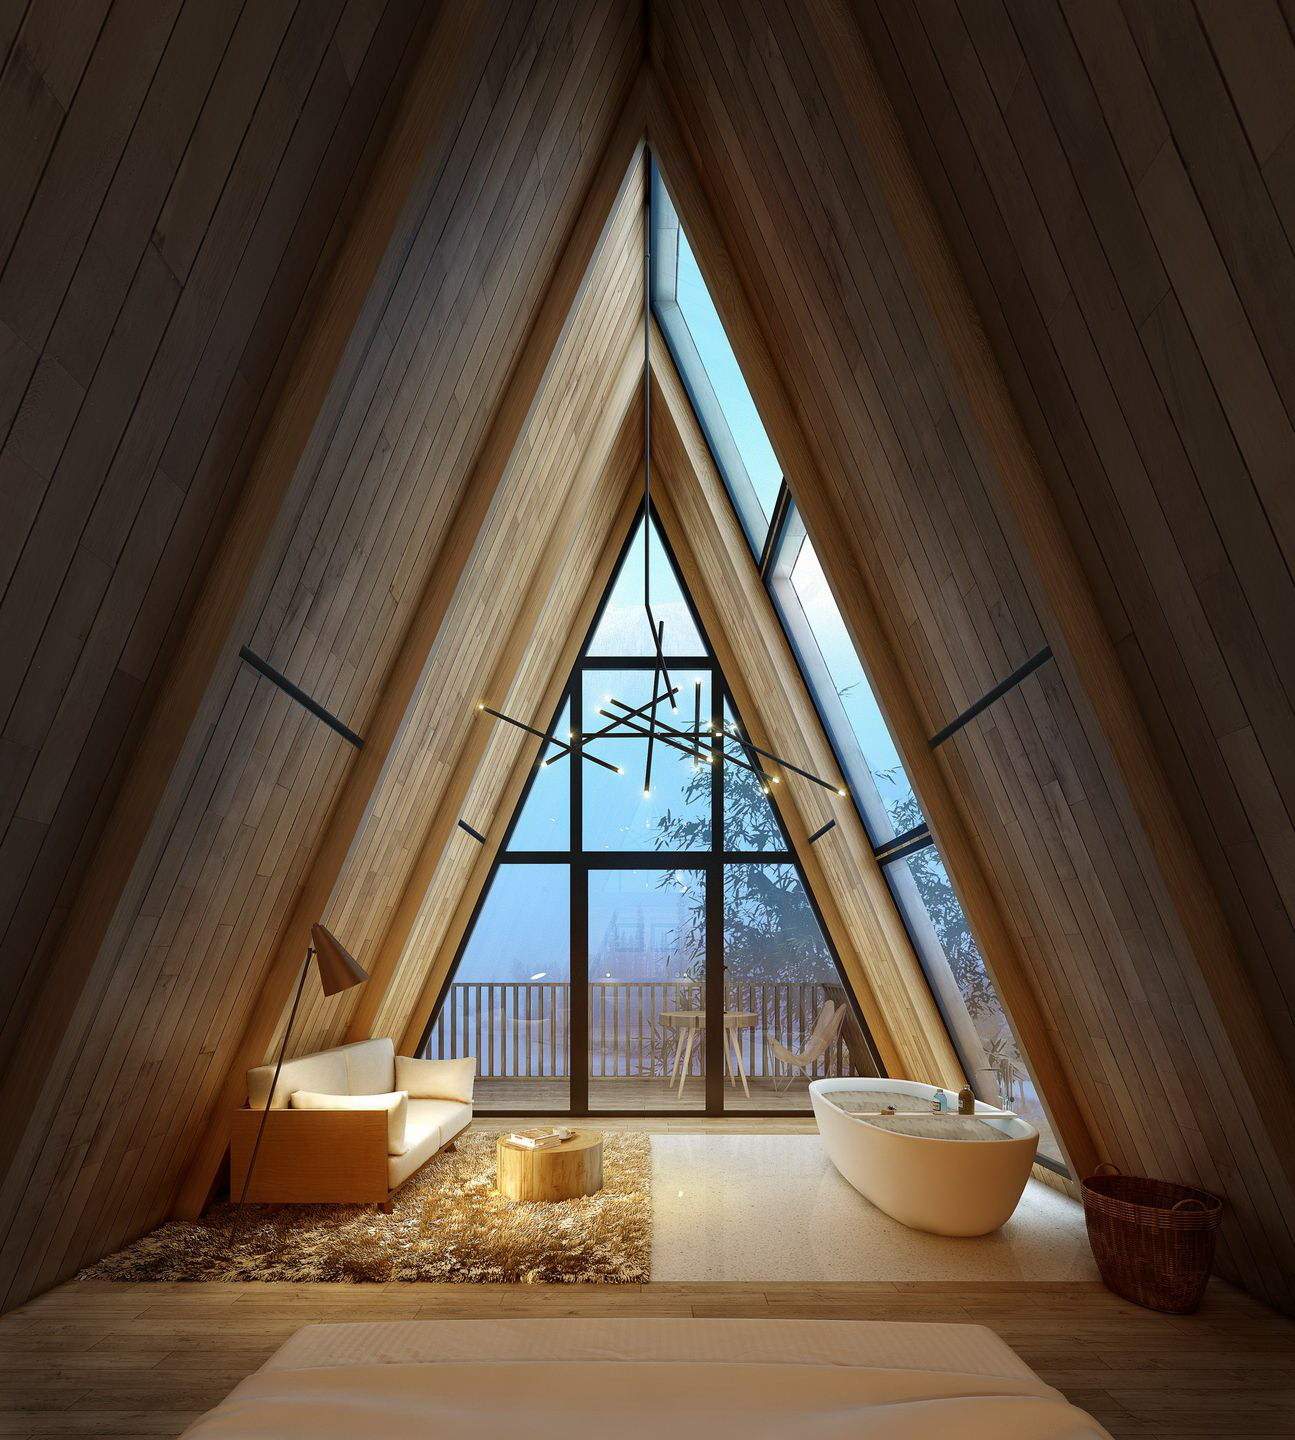 Treewow Tribe – A-Frame Tree Houses by Monoarchi